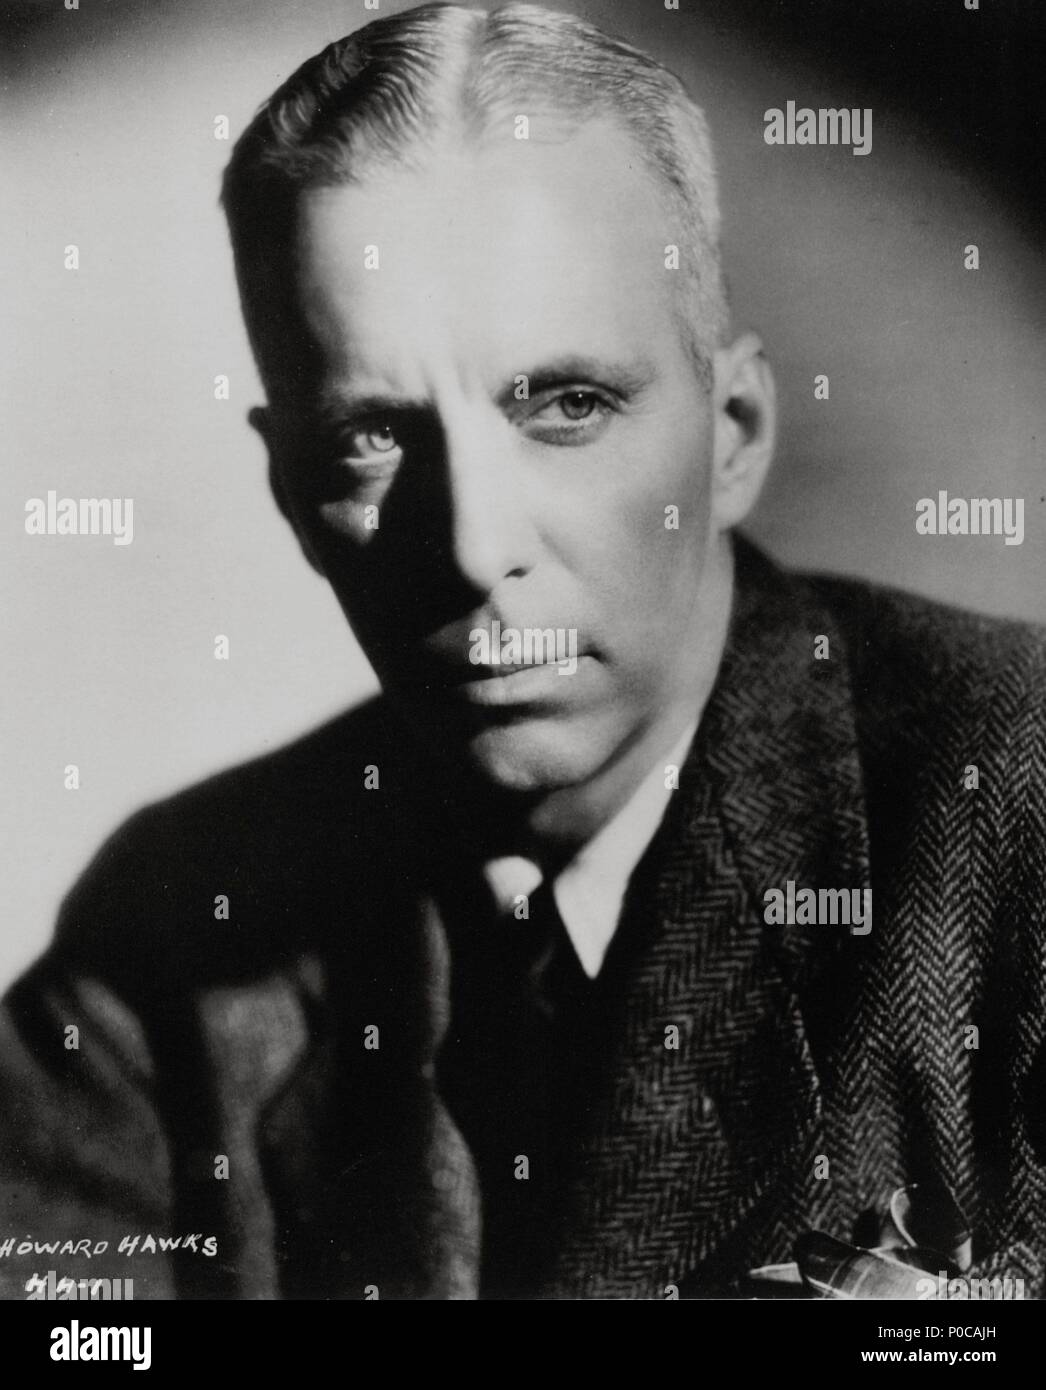 Howard Hawks Portrait Stock Photos   Howard Hawks Portrait Stock ... 451afa354bc